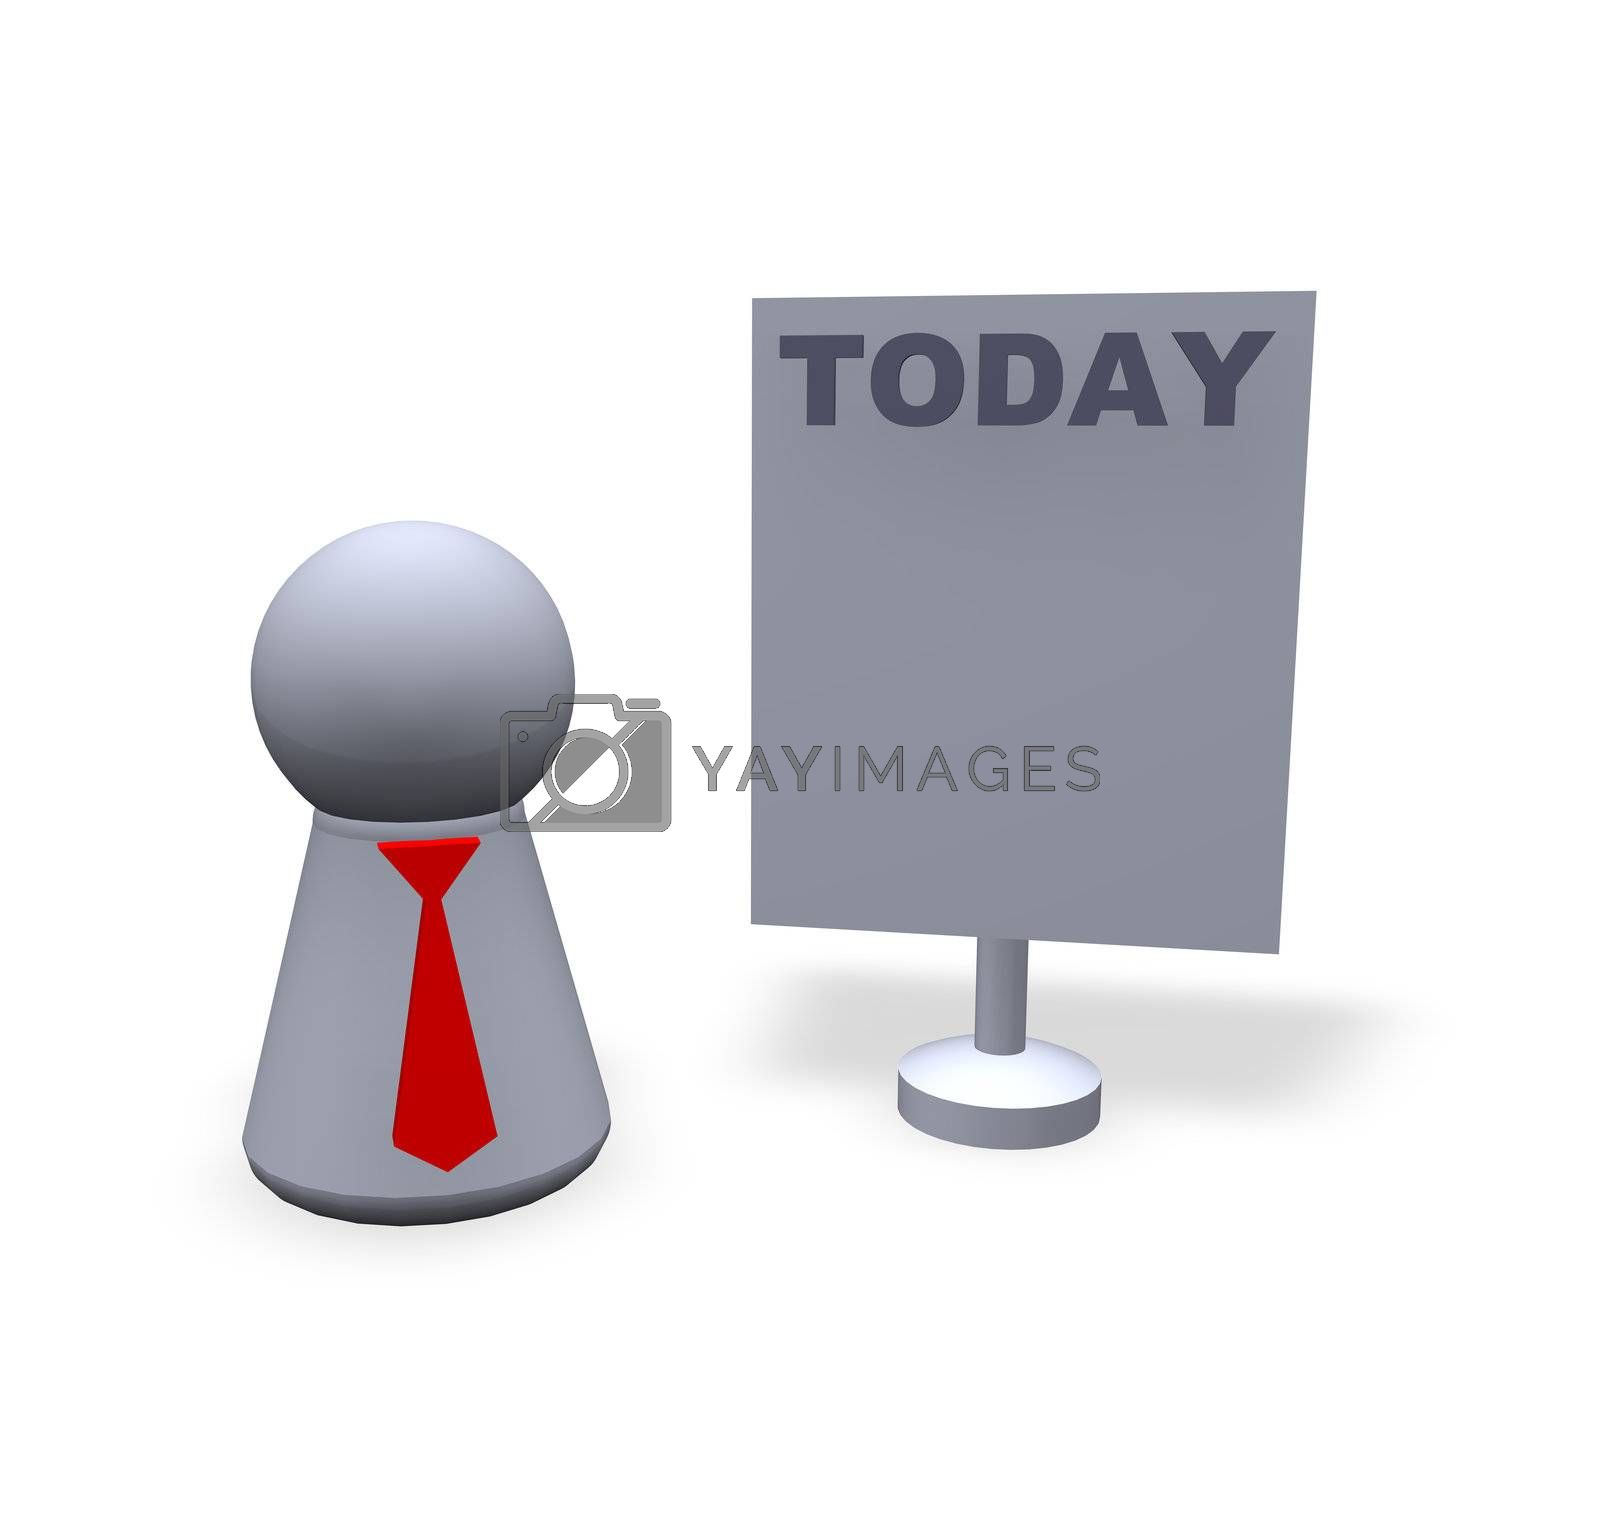 play figure with red tie and sign with today text